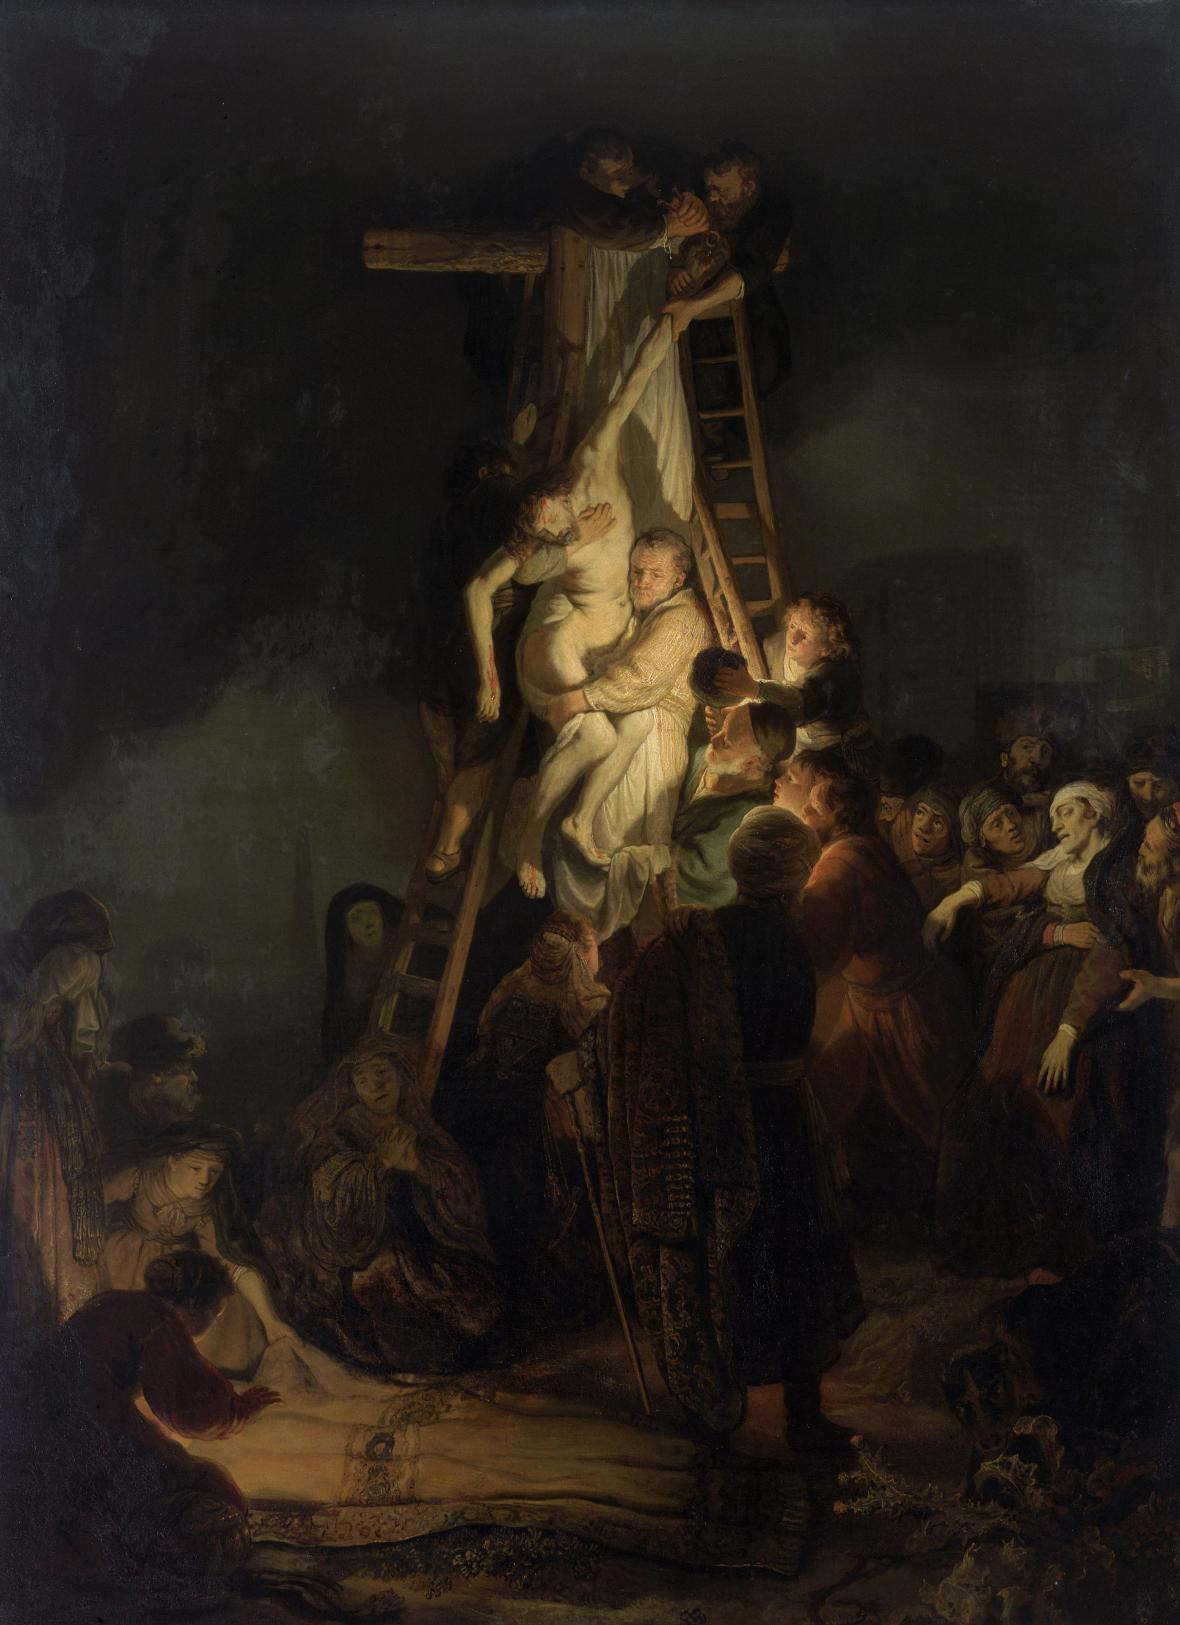 Rembrandt, The Descent from the Cross, 1634